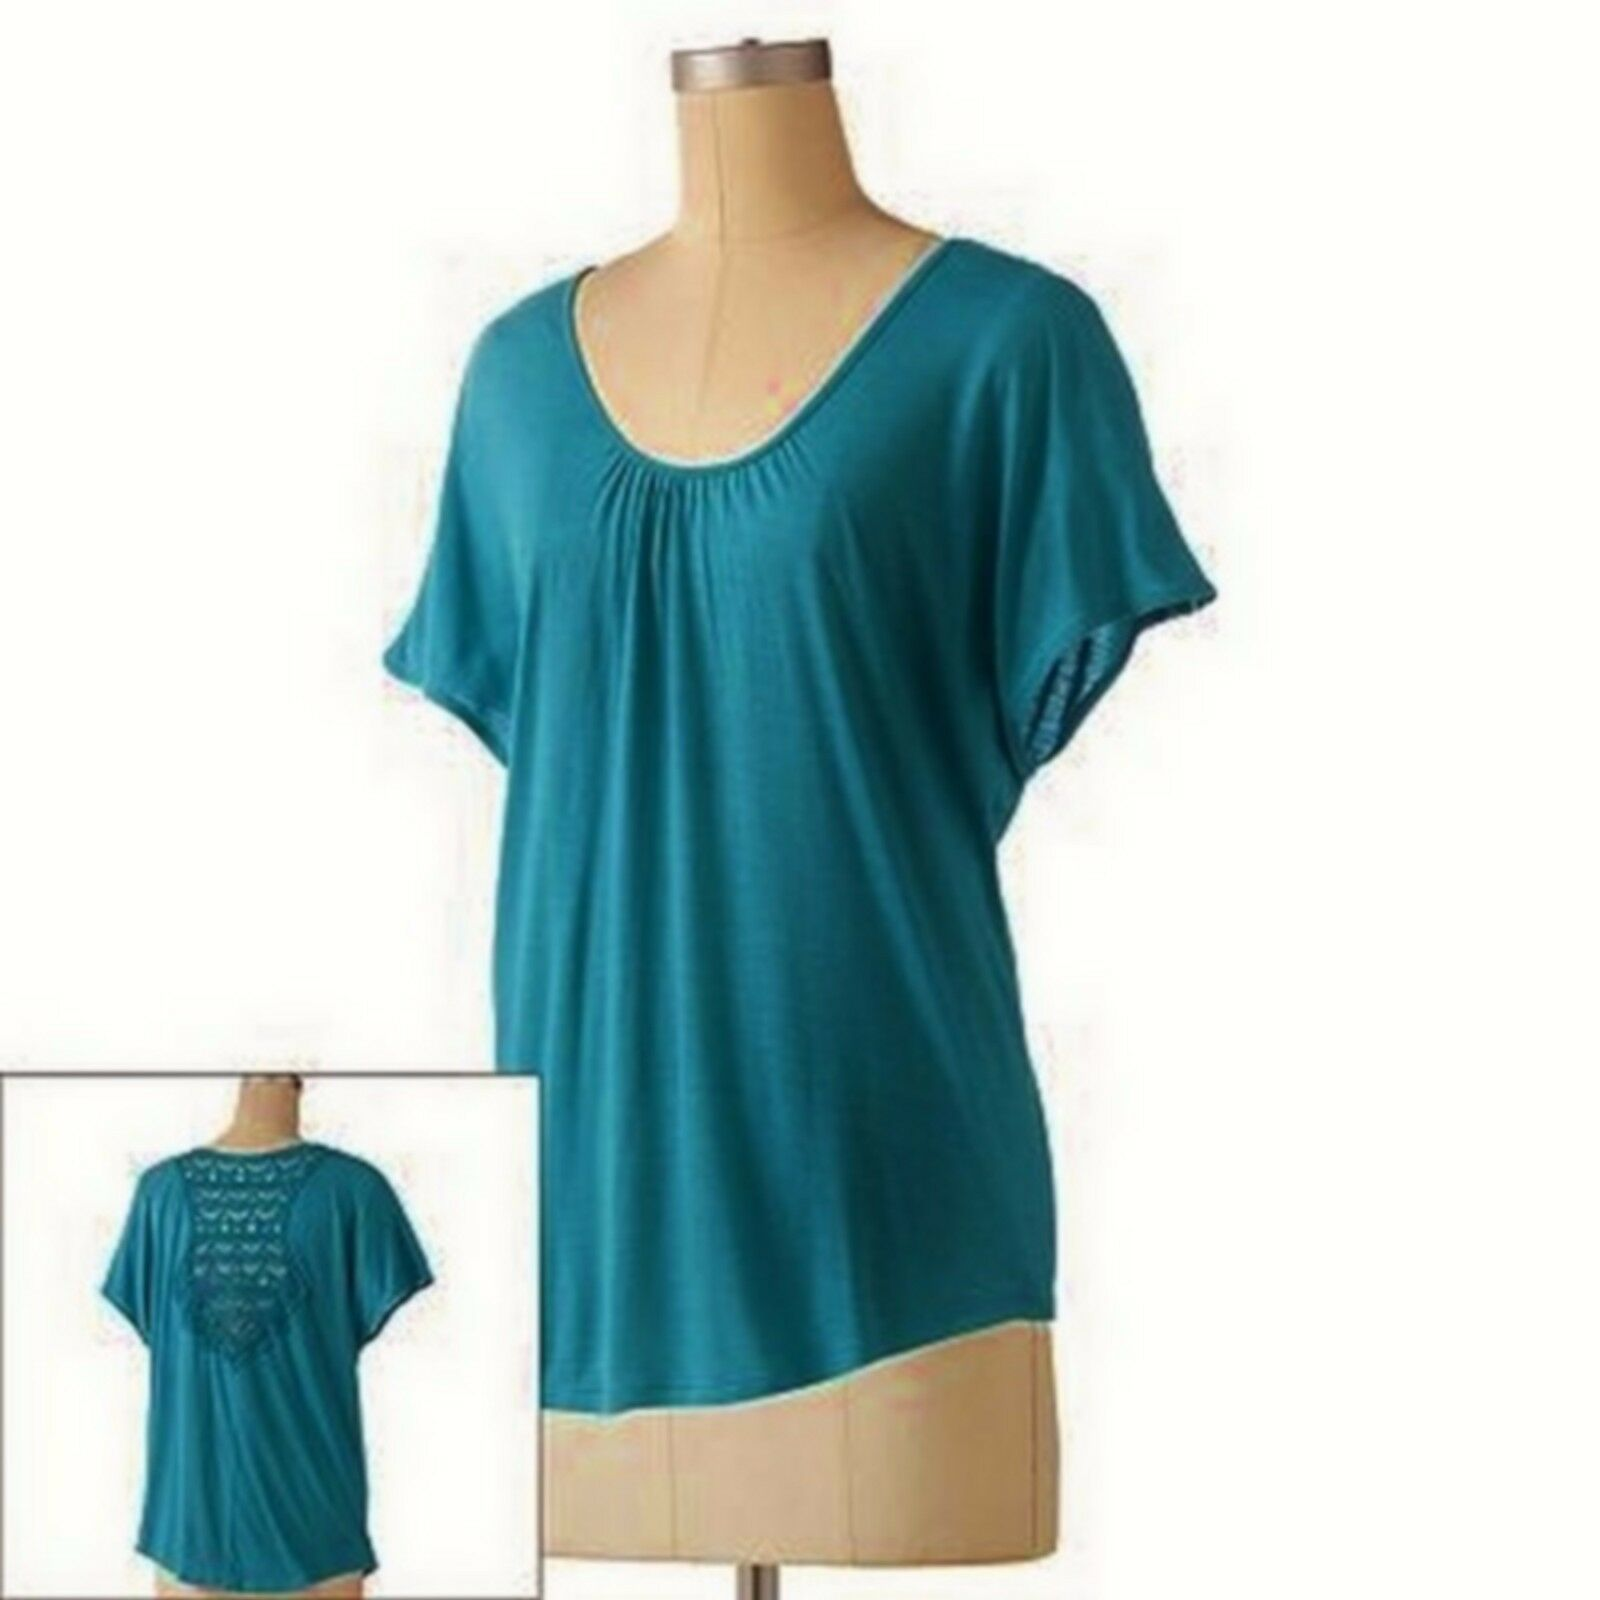 Primary image for LC Lauren Conrad Teal Crochet Back Knit Tee Tank Top Beyond The Waves